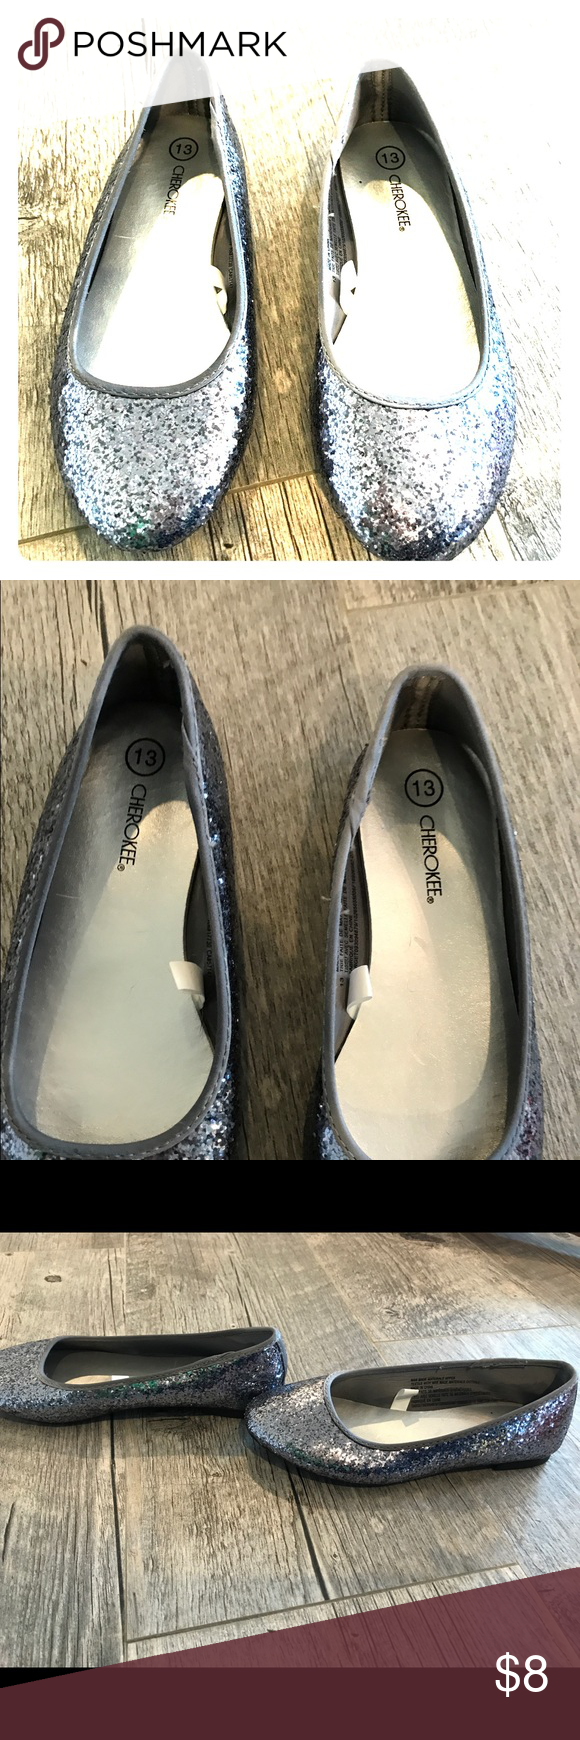 Silver Girl Shoes size 13 | Girls shoes